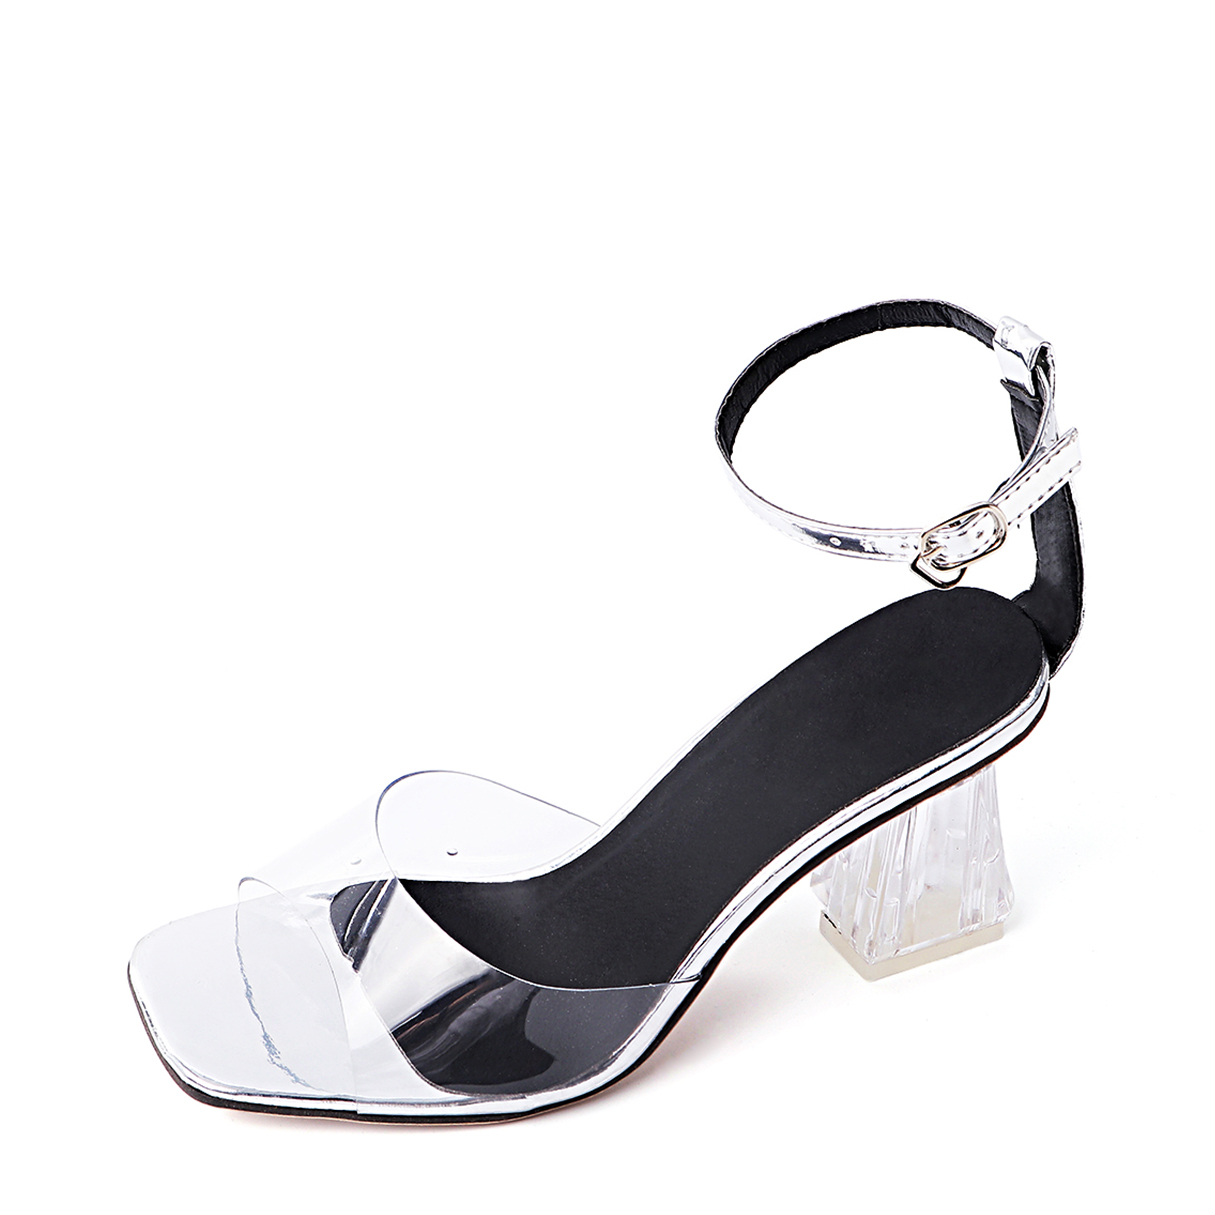 Silver PVC Ankle Strap Chunky Heel Sandals flock leather women ankle strap high heel sandals platform sexy fashion party shoes for woman black with 10cm heels ch a0060